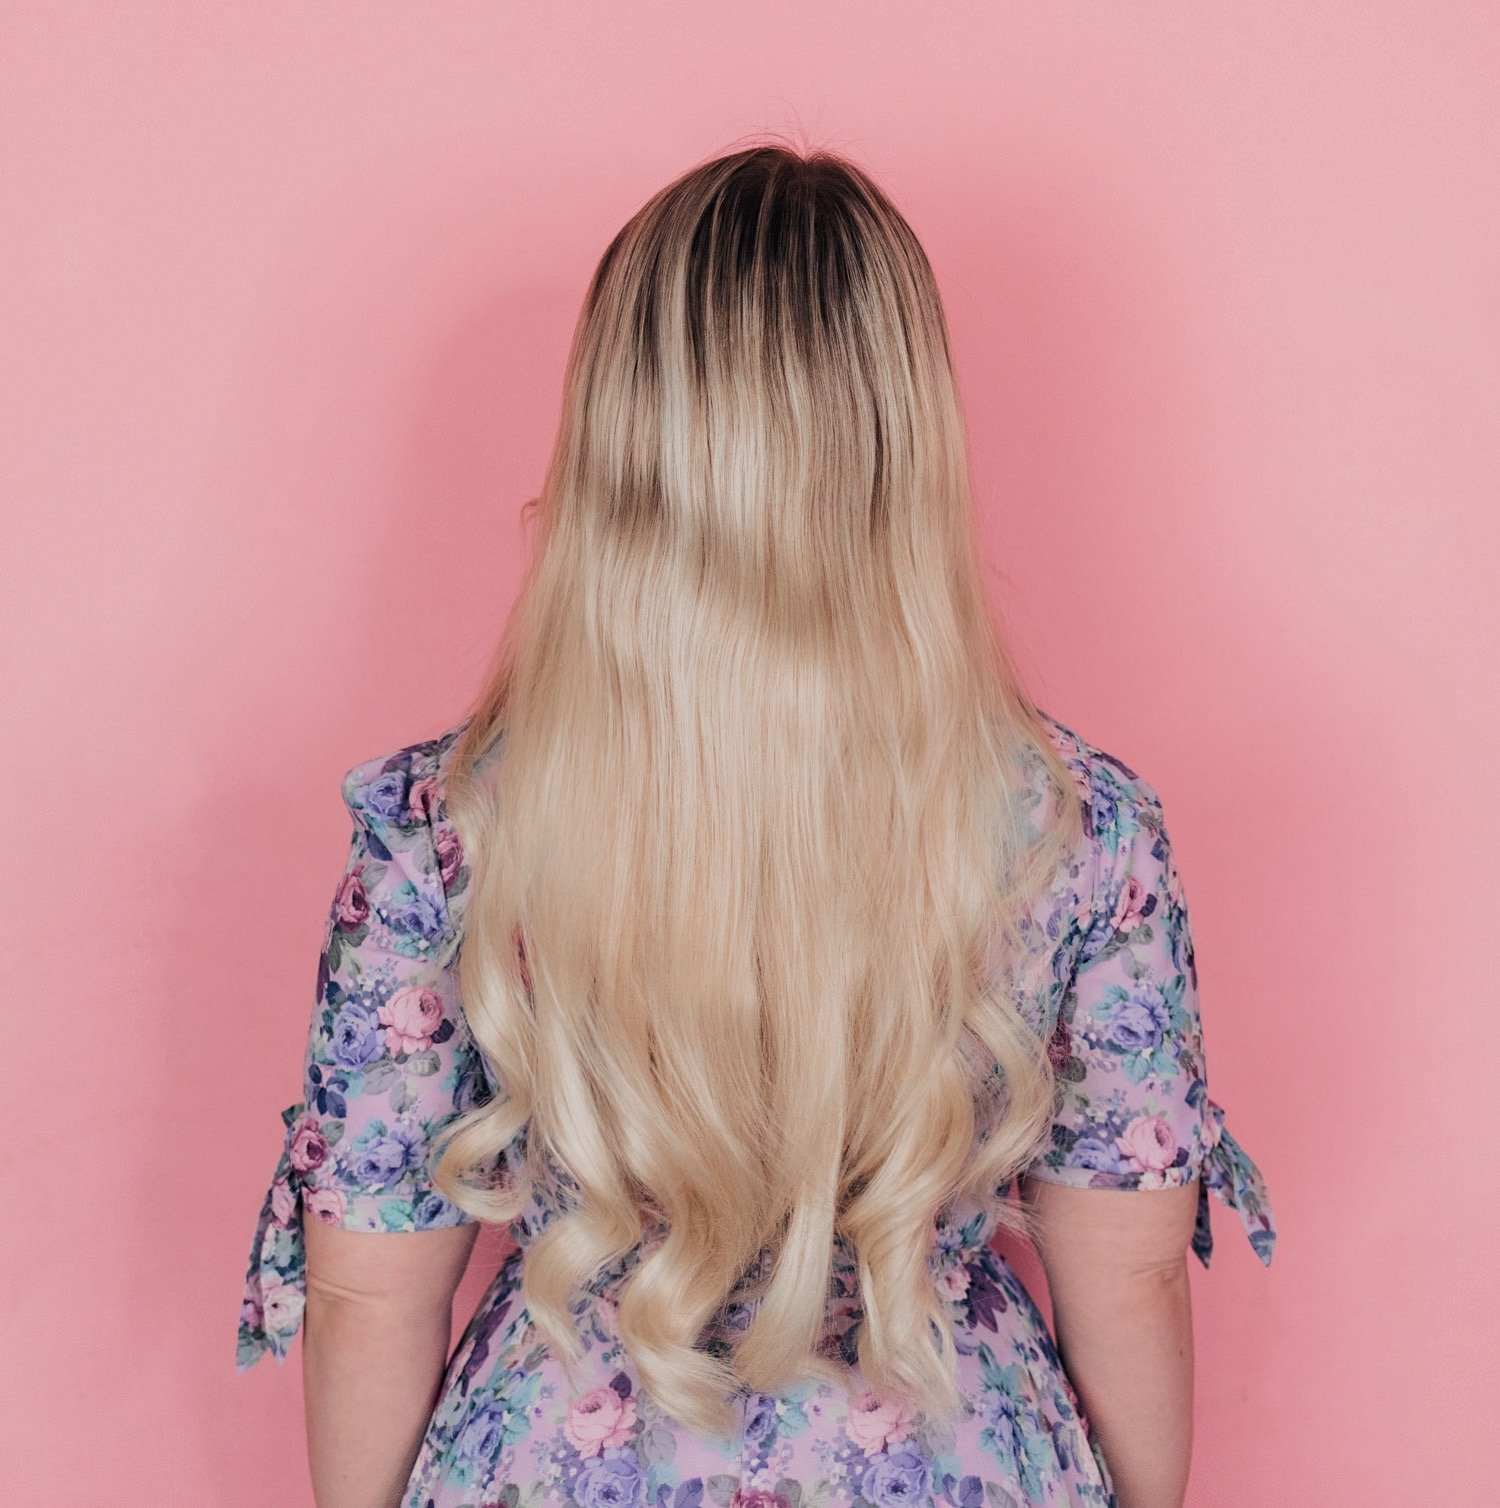 Fashion Blogger Elizabeth Hugen of Lizzie in Lace shares her Hidden Crown Extensions Review Update and a comparison of all the extensions including the original Hidden Crown